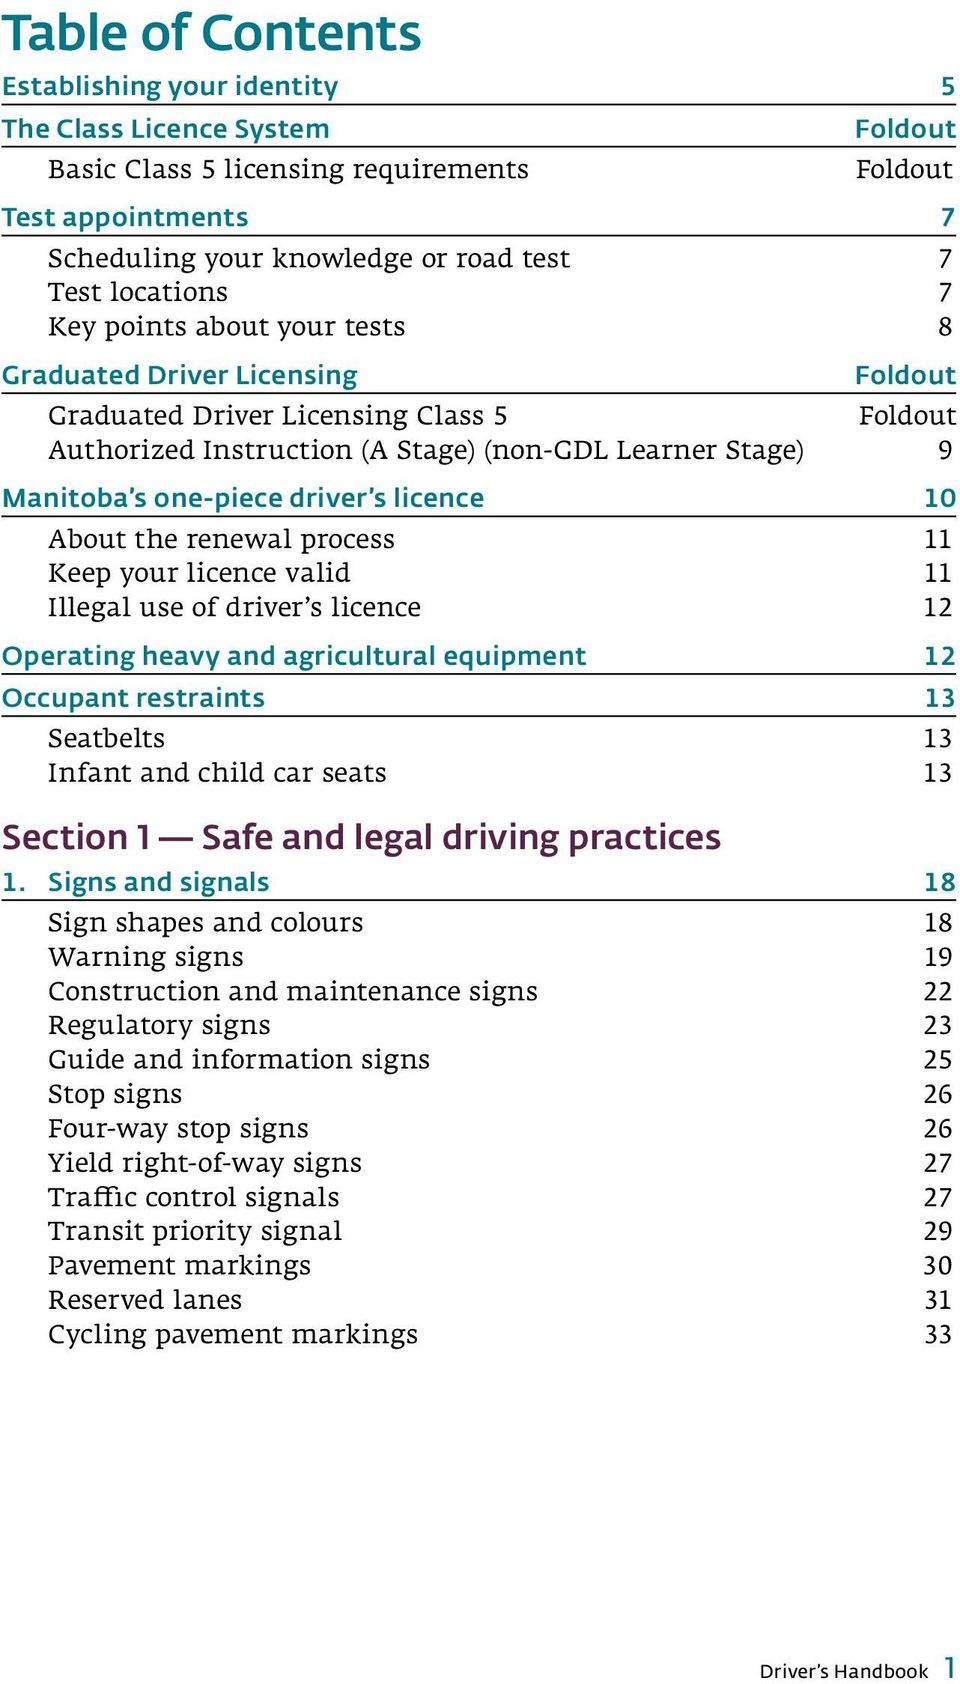 driver s licence 10 About the renewal process 11 Keep your licence valid 11 Illegal use of driver s licence 12 Operating heavy and agricultural equipment 12 Occupant restraints 13 Seatbelts 13 Infant